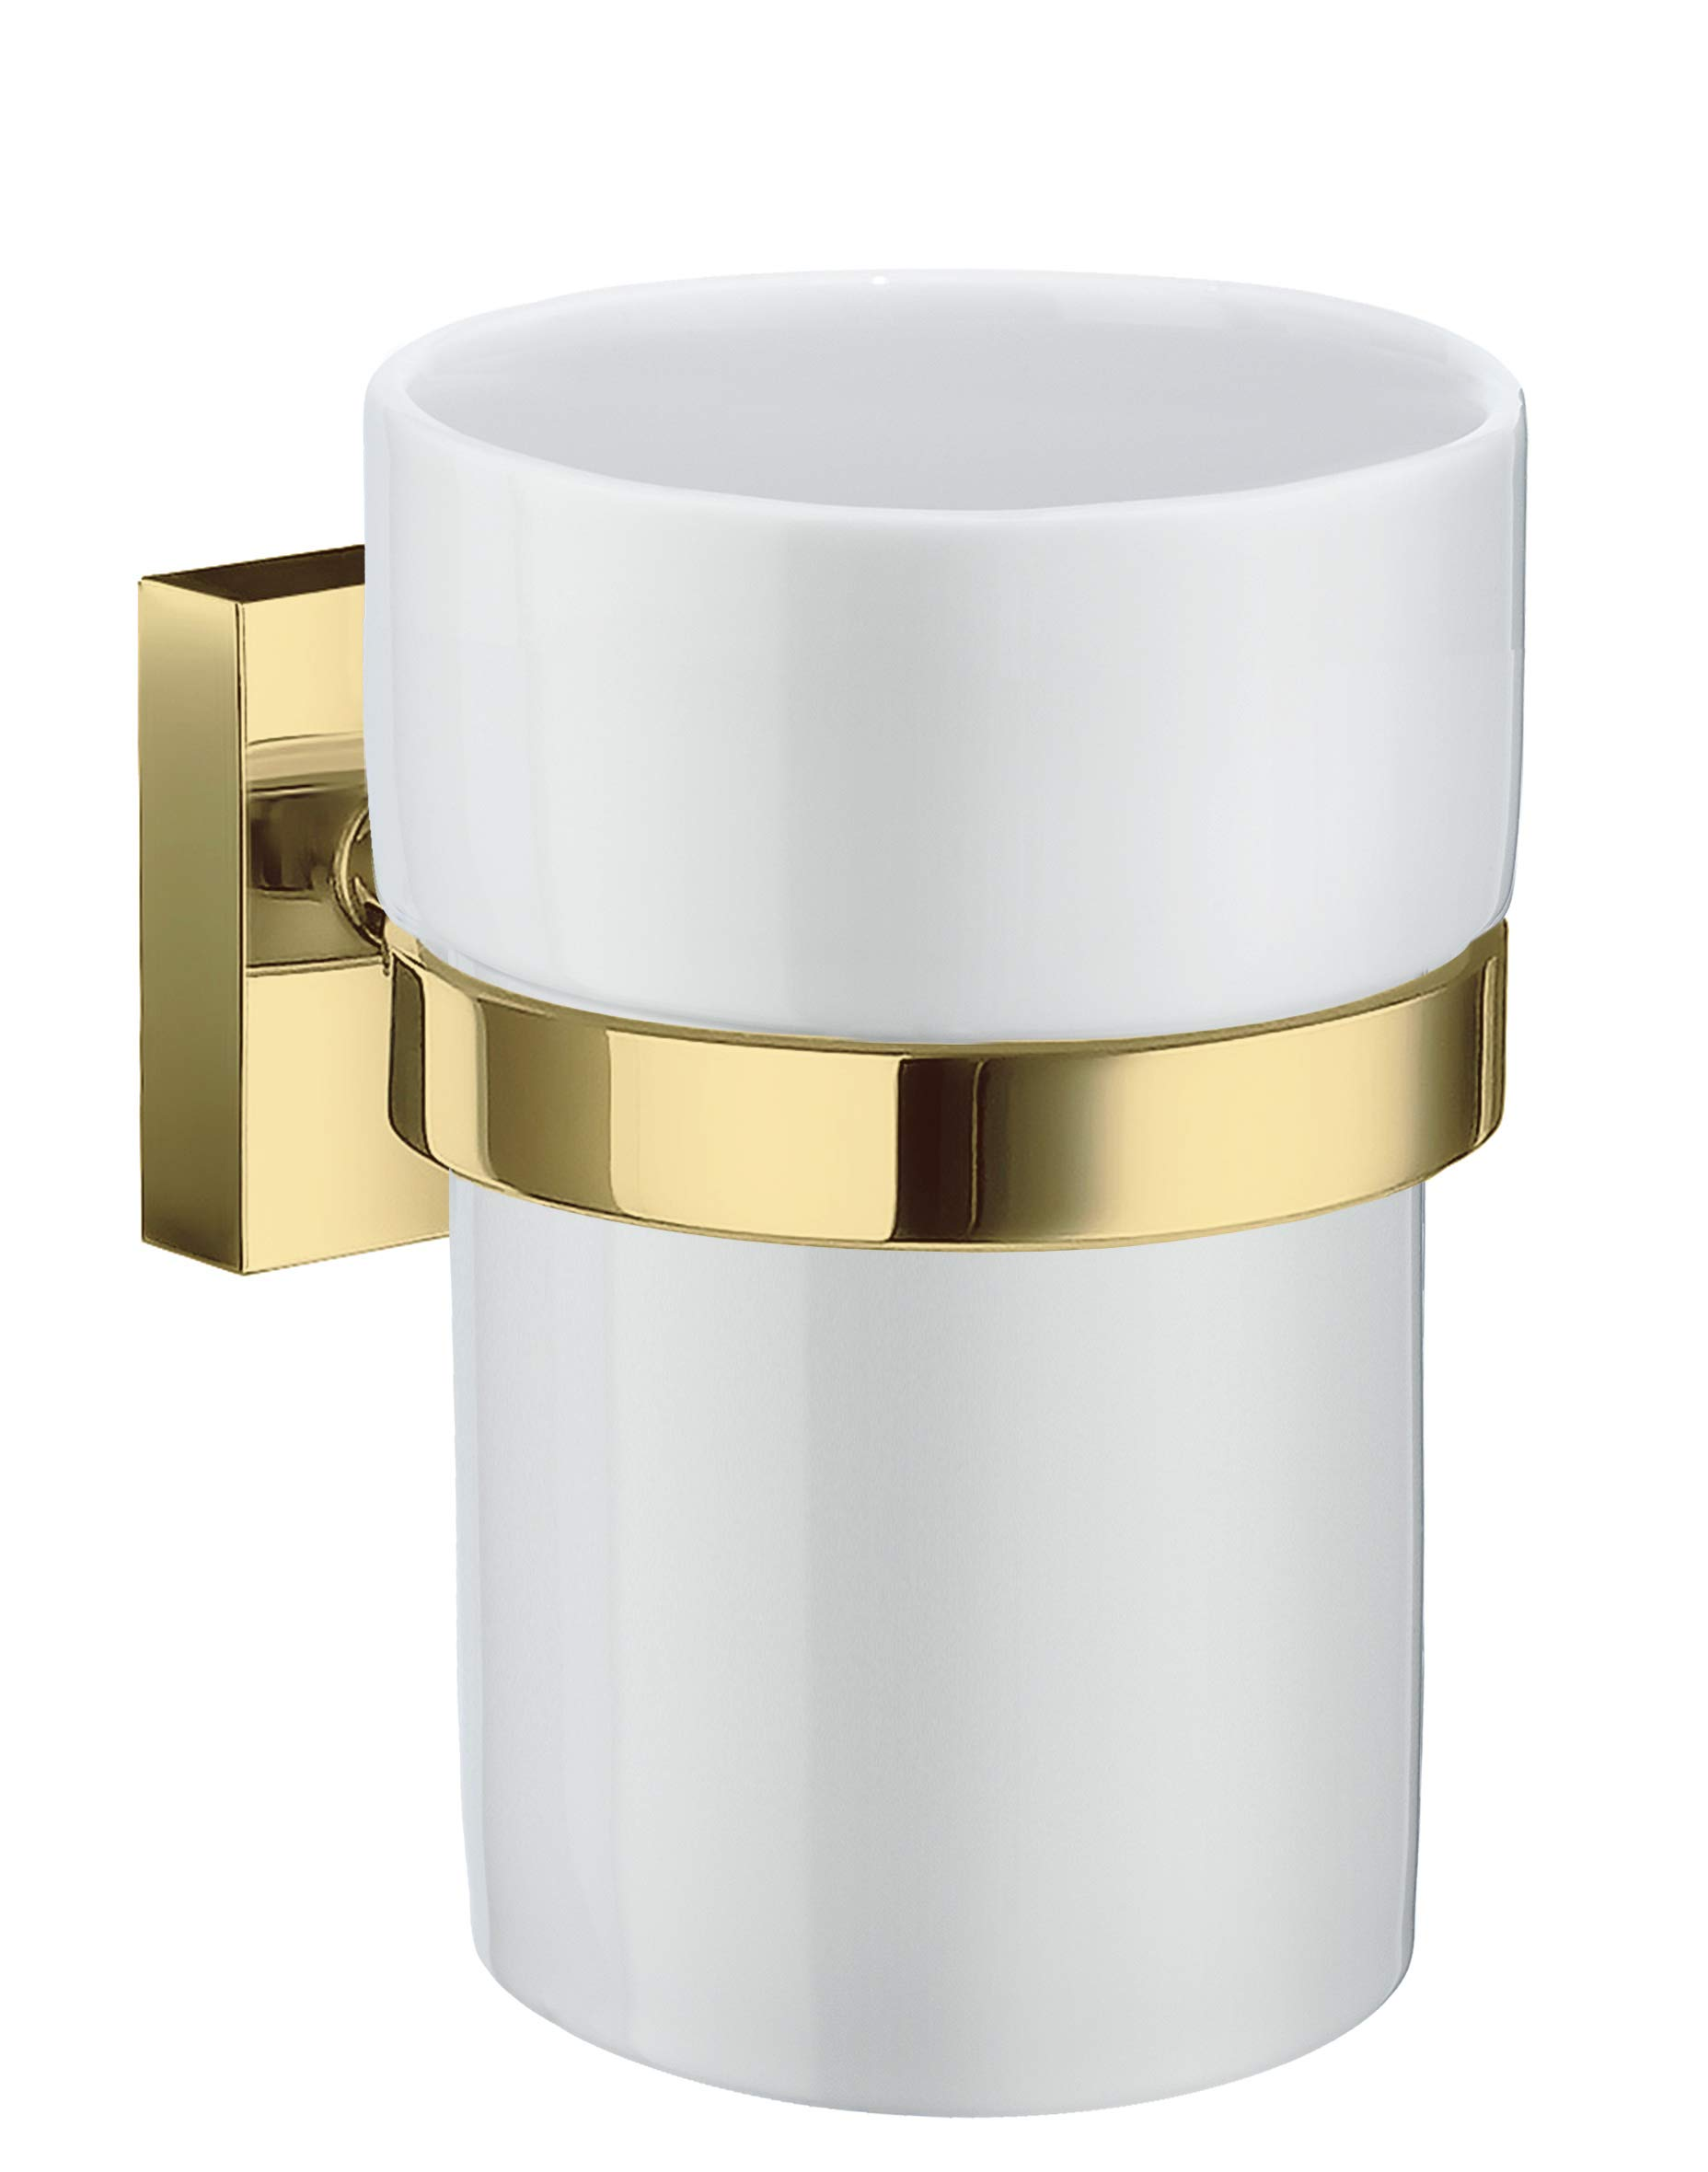 Smedbo House Holder with Tumbler RV343P Polished Brass .Include Glue.Fixing Without Drilling